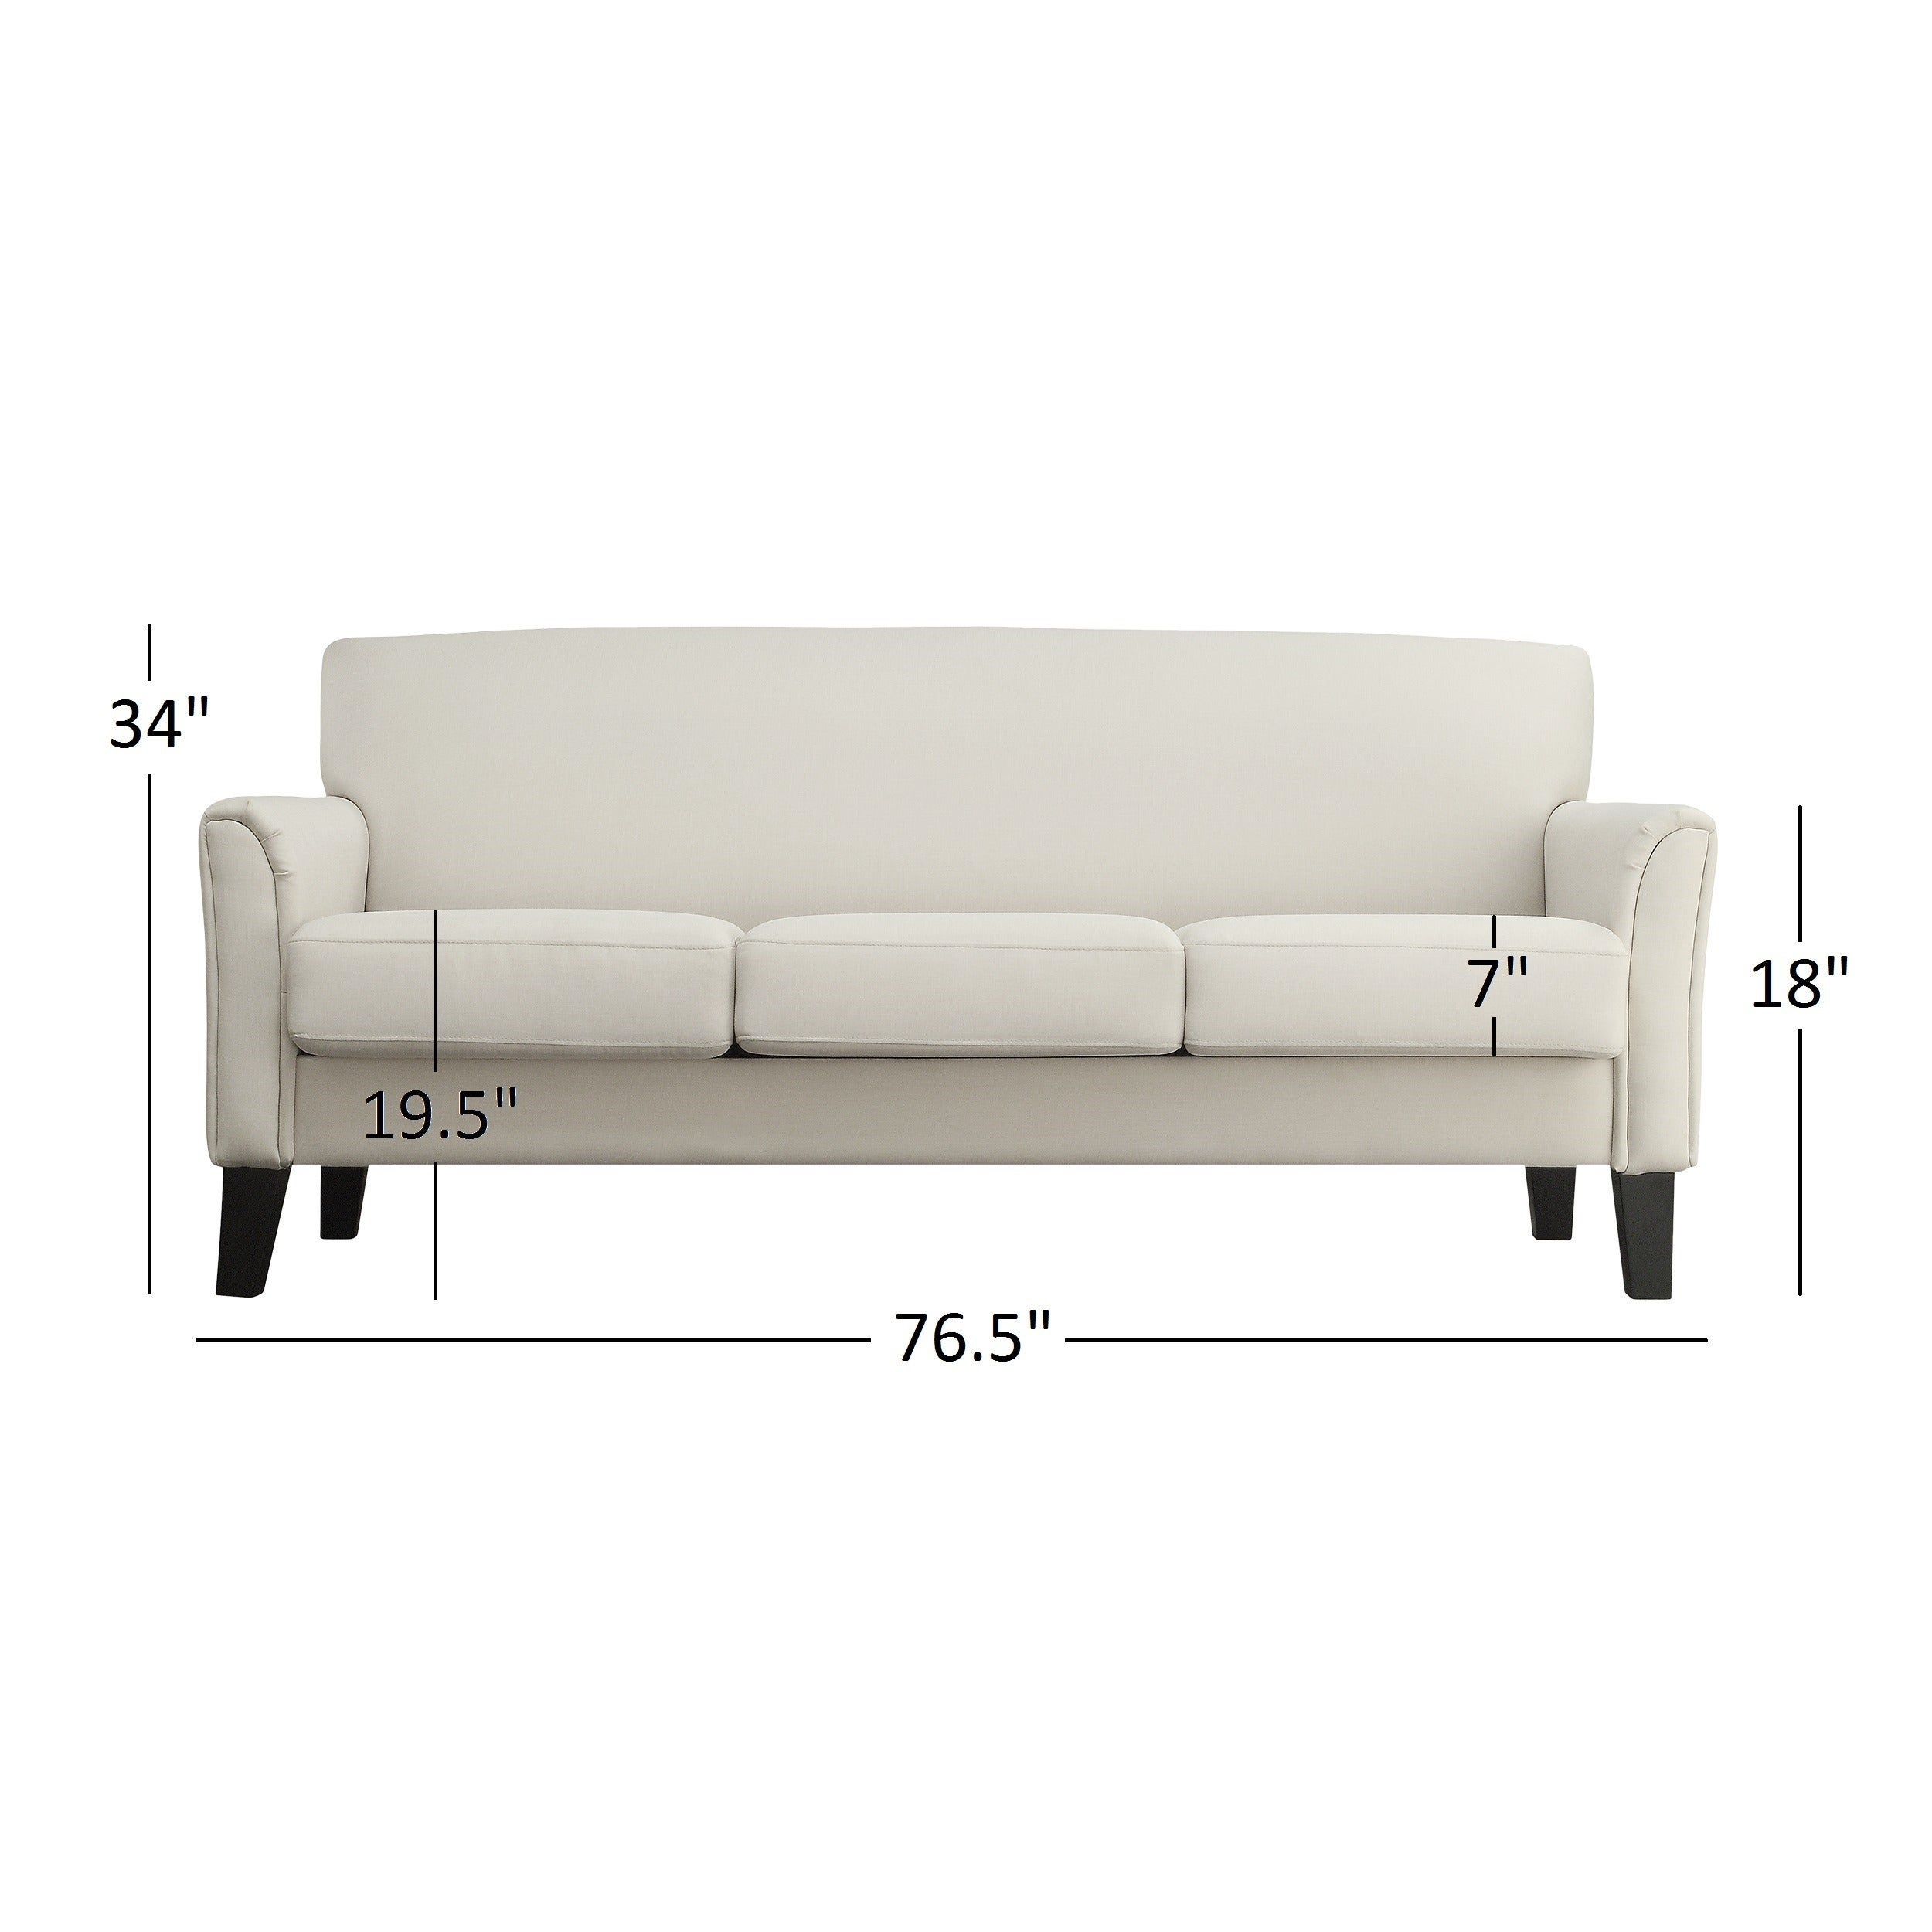 Uptown Modern Sofa By INSPIRE Q Classic   Free Shipping Today    Overstock.com   11947586